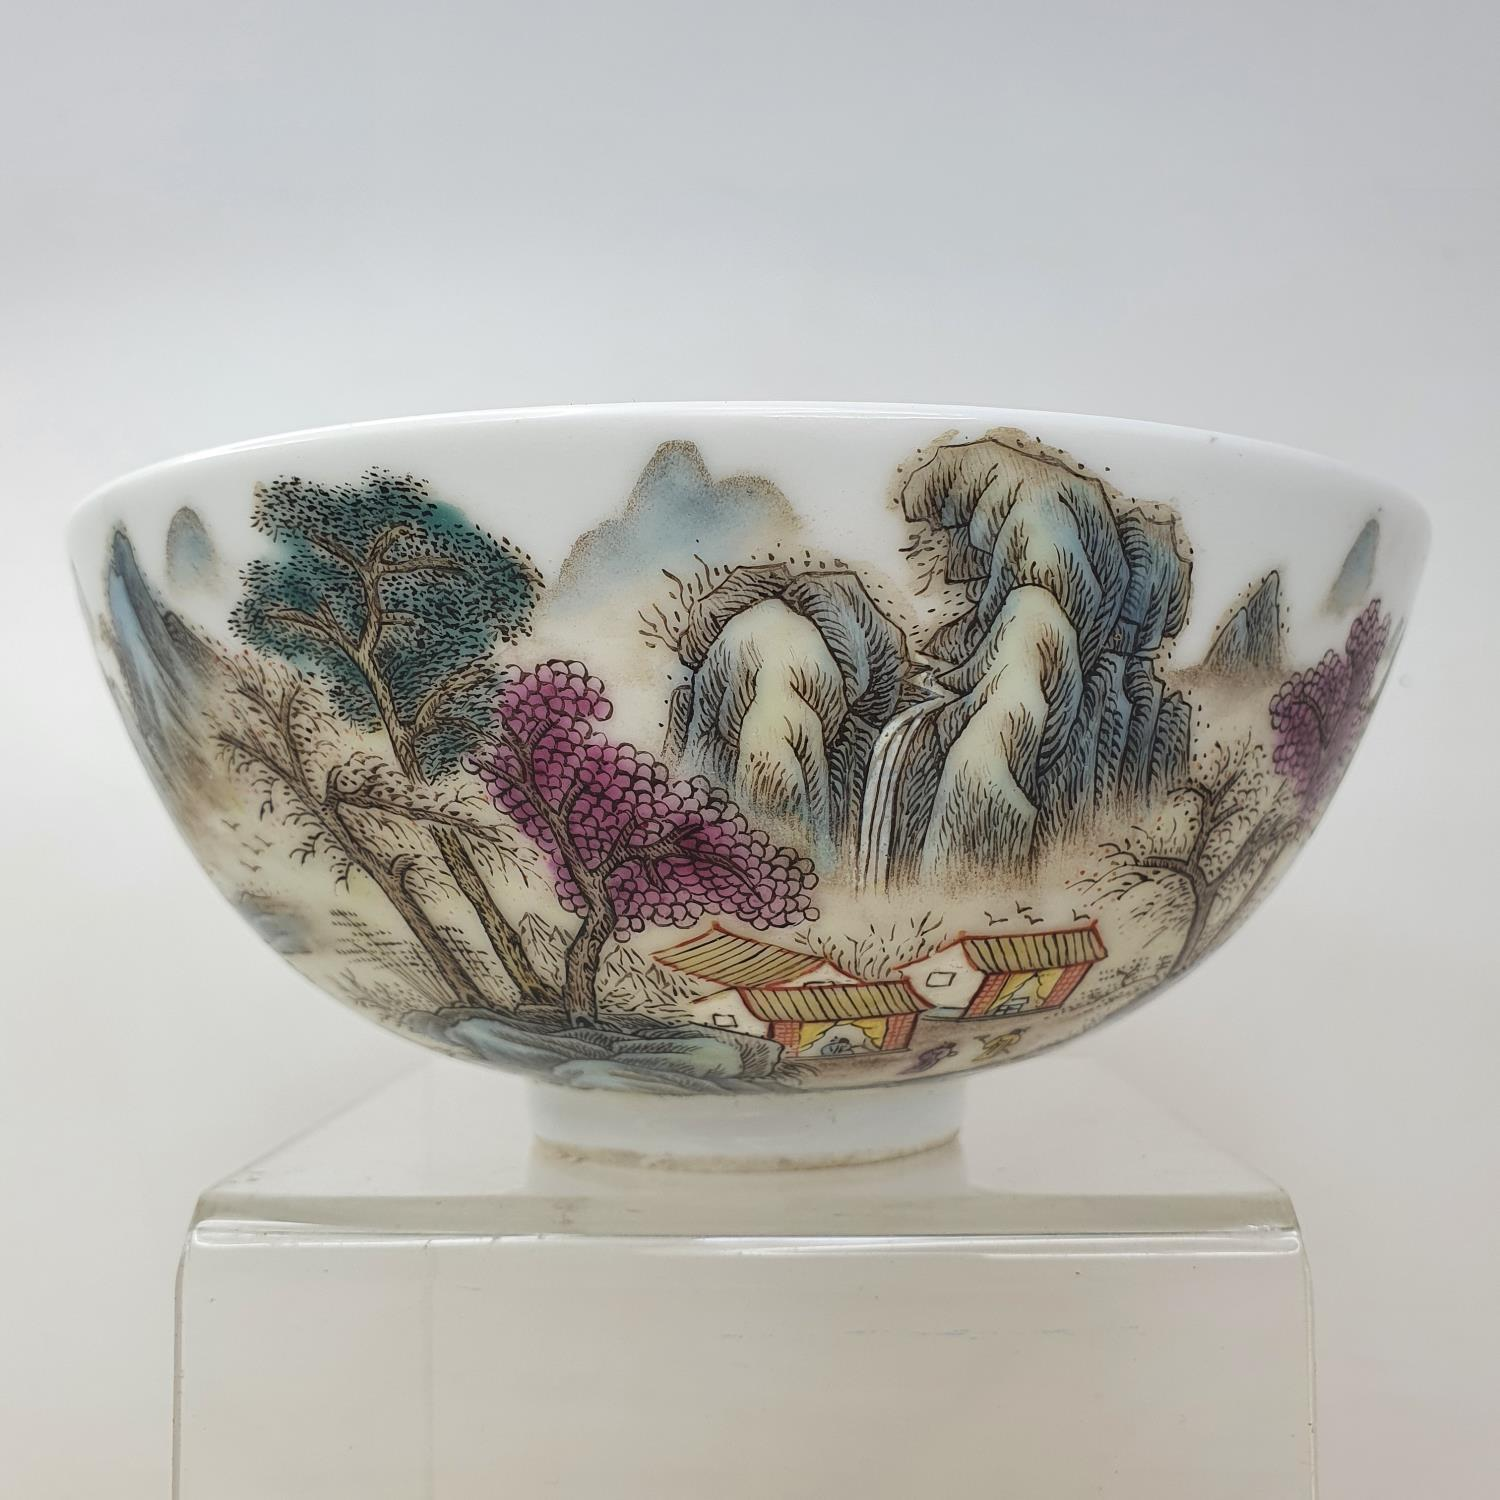 A Chinese porcelain bowl, decorated a mountainous landscape with figures and buildings, six